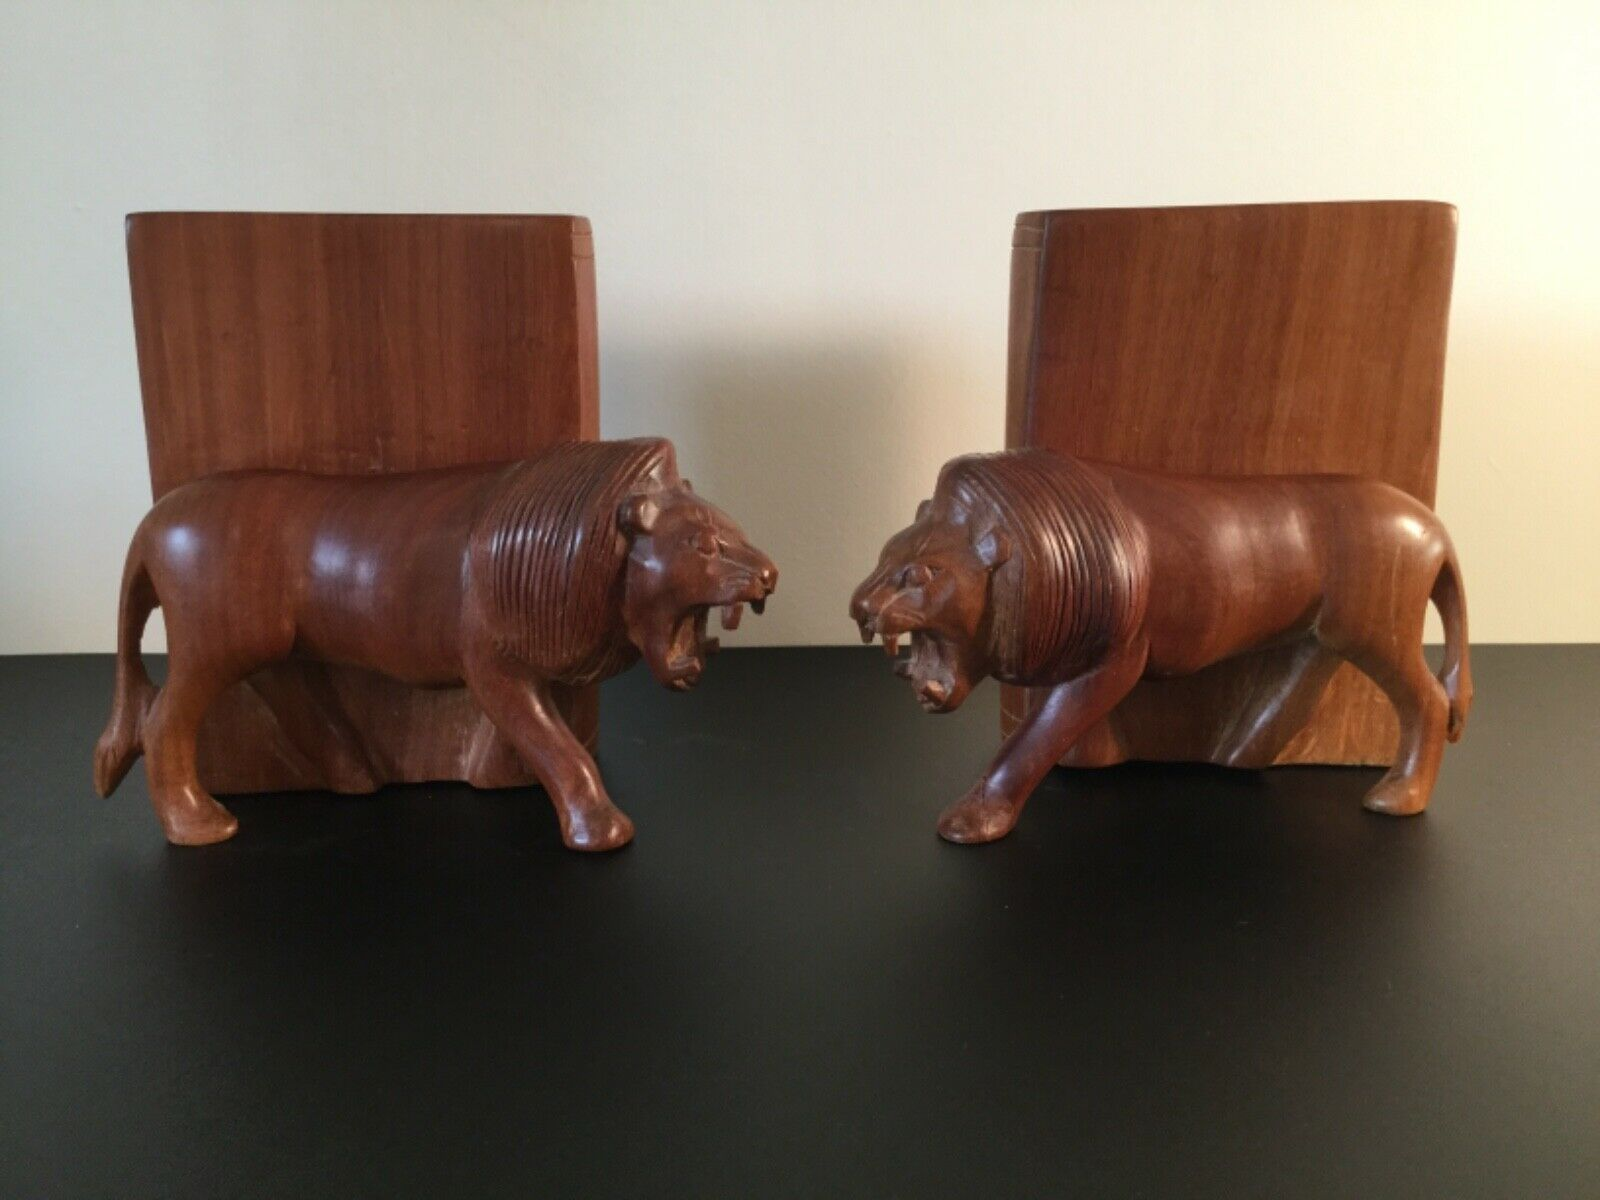 Lion Bookends Beautifull Vintage Wood Carvings